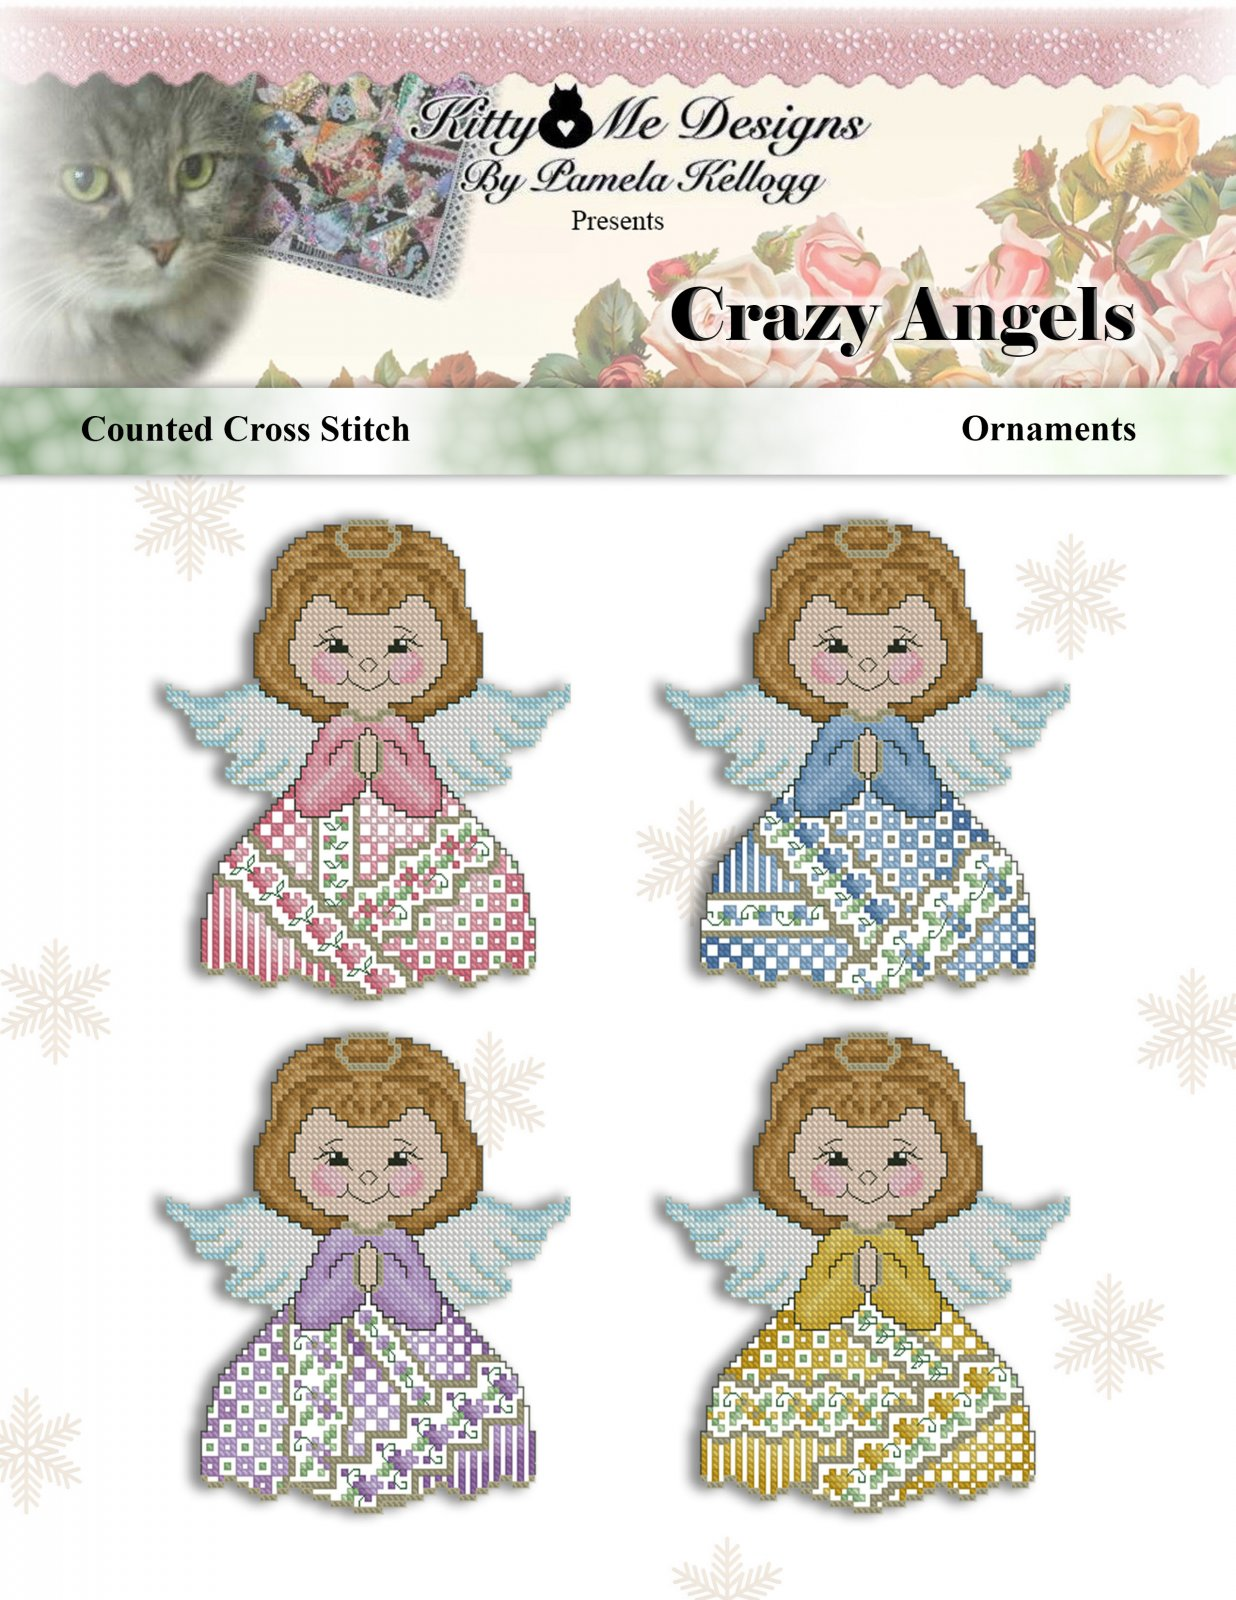 Kitty and Me Crazy Angels Ornaments